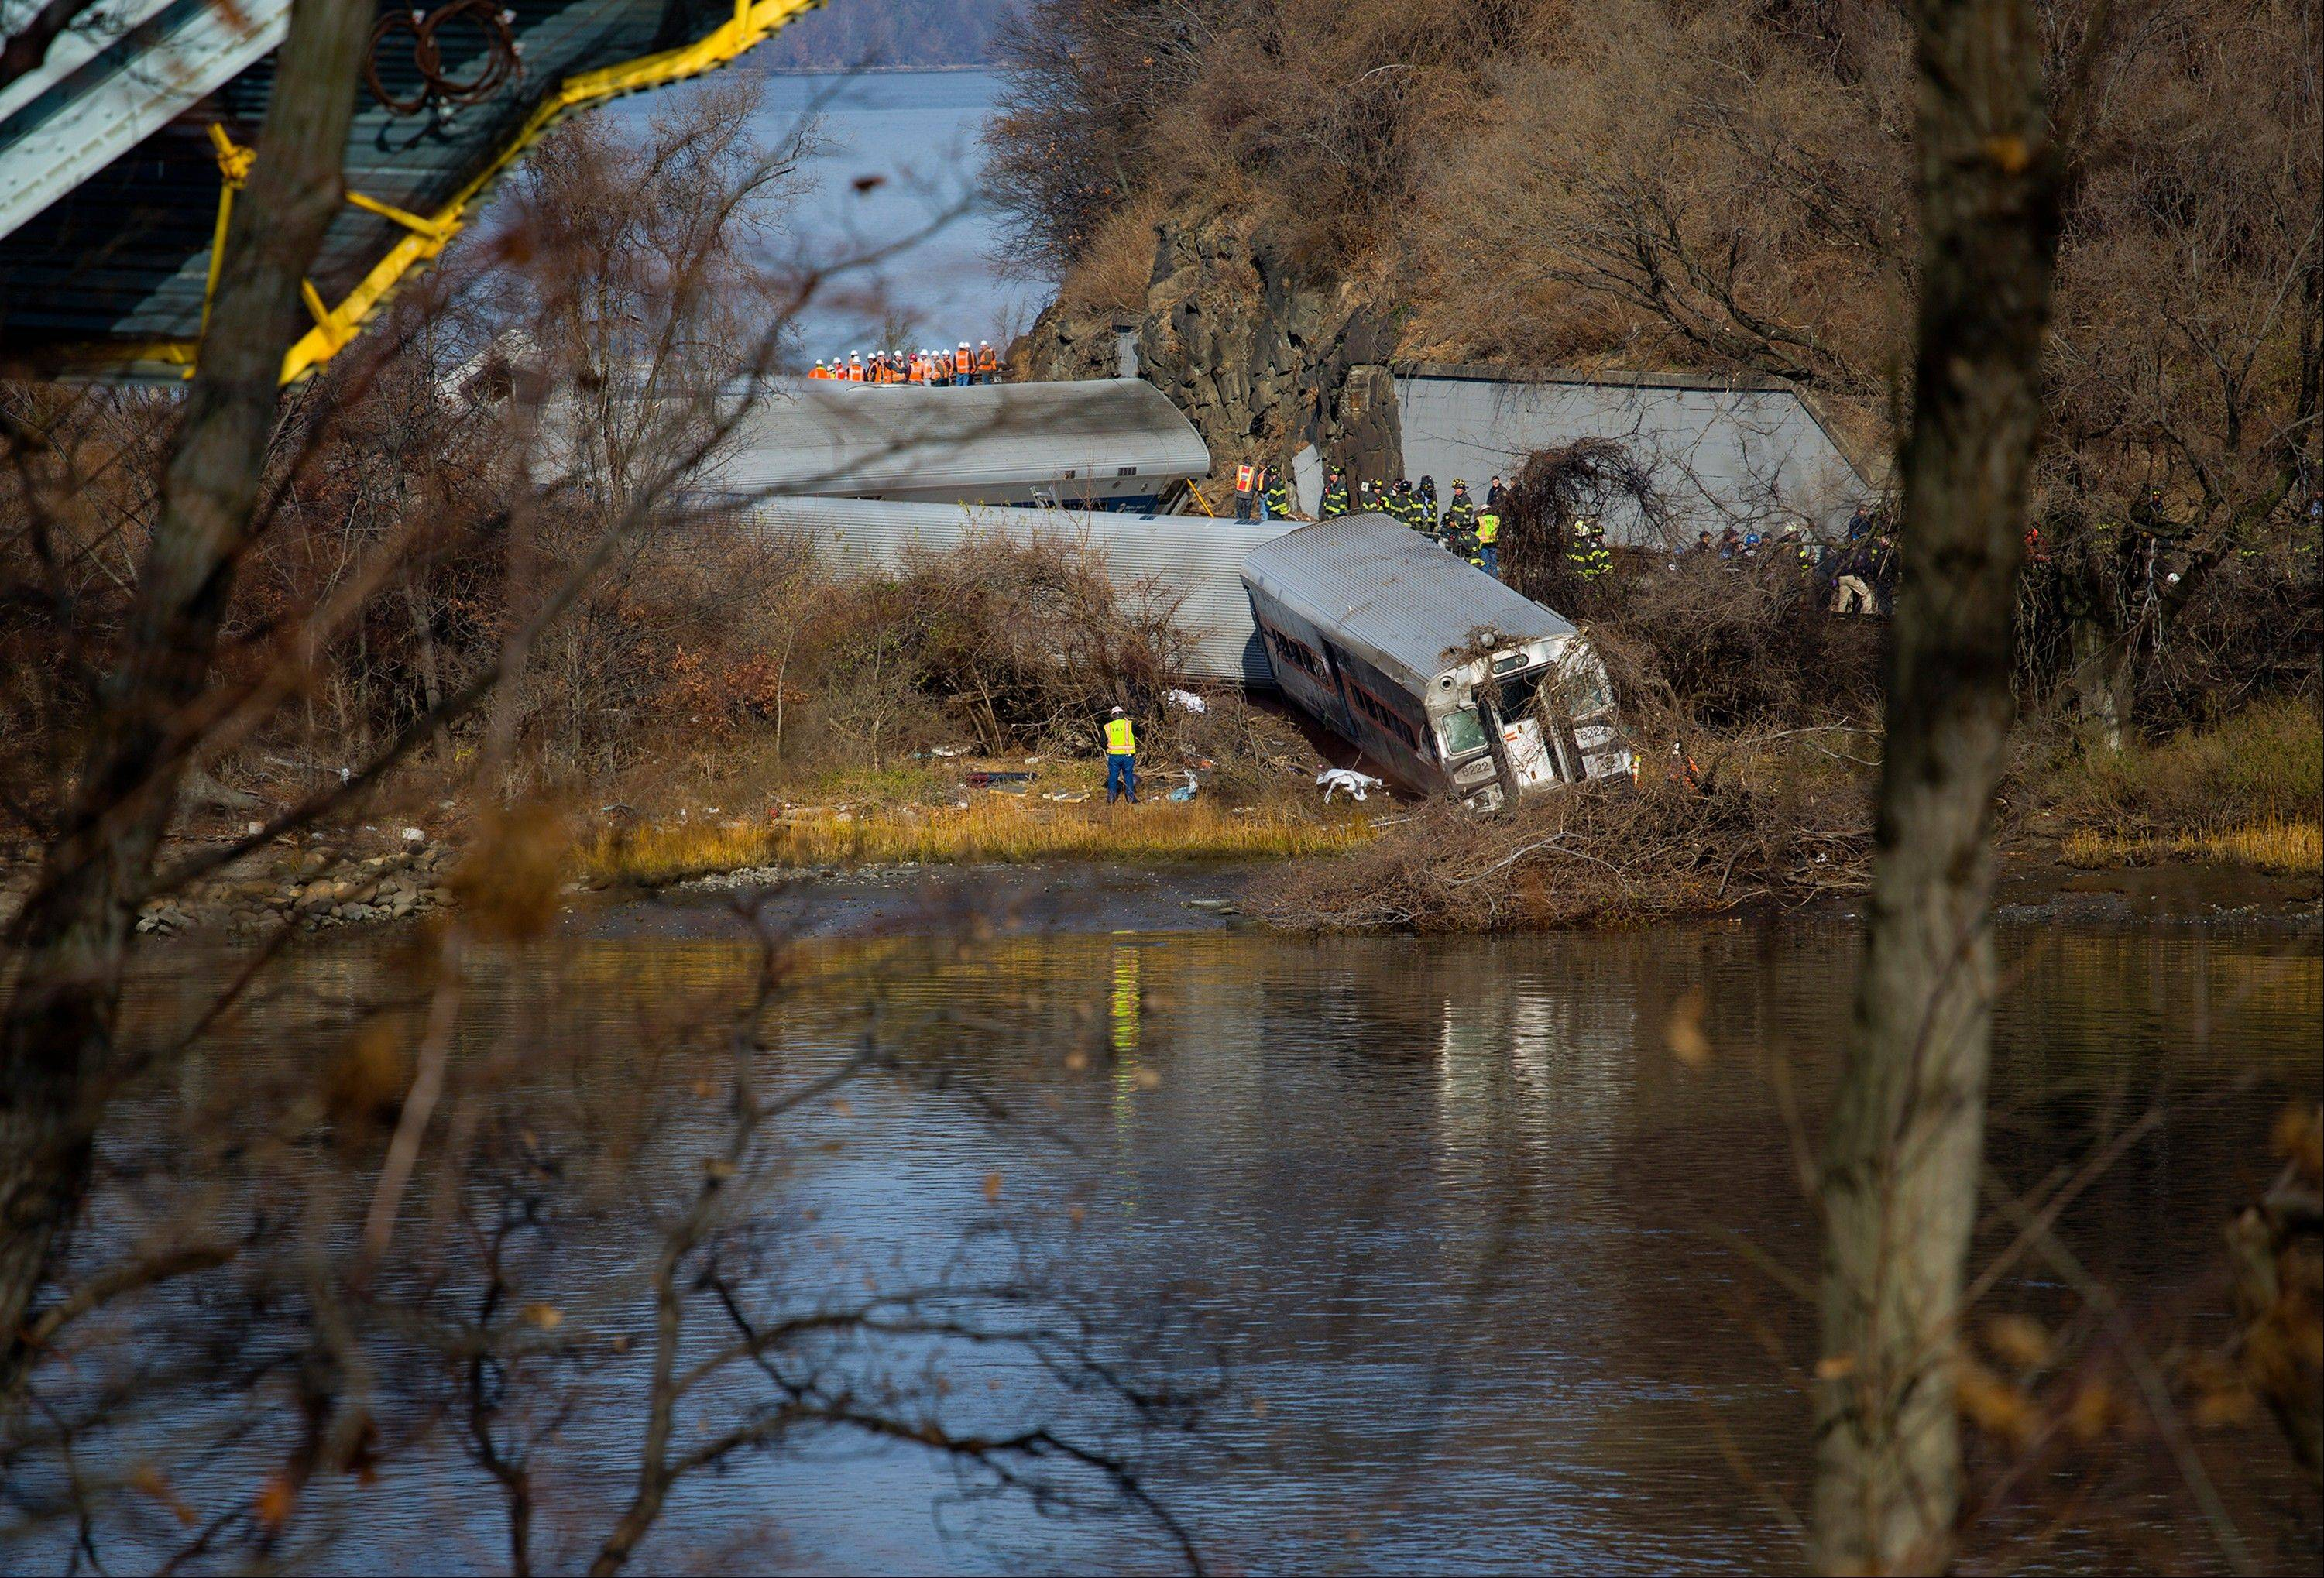 Viewed from Manhattan, Emergency rescue personnel work the scene of a Metro-North passenger train derailment in the Bronx borough of New York, Sunday.